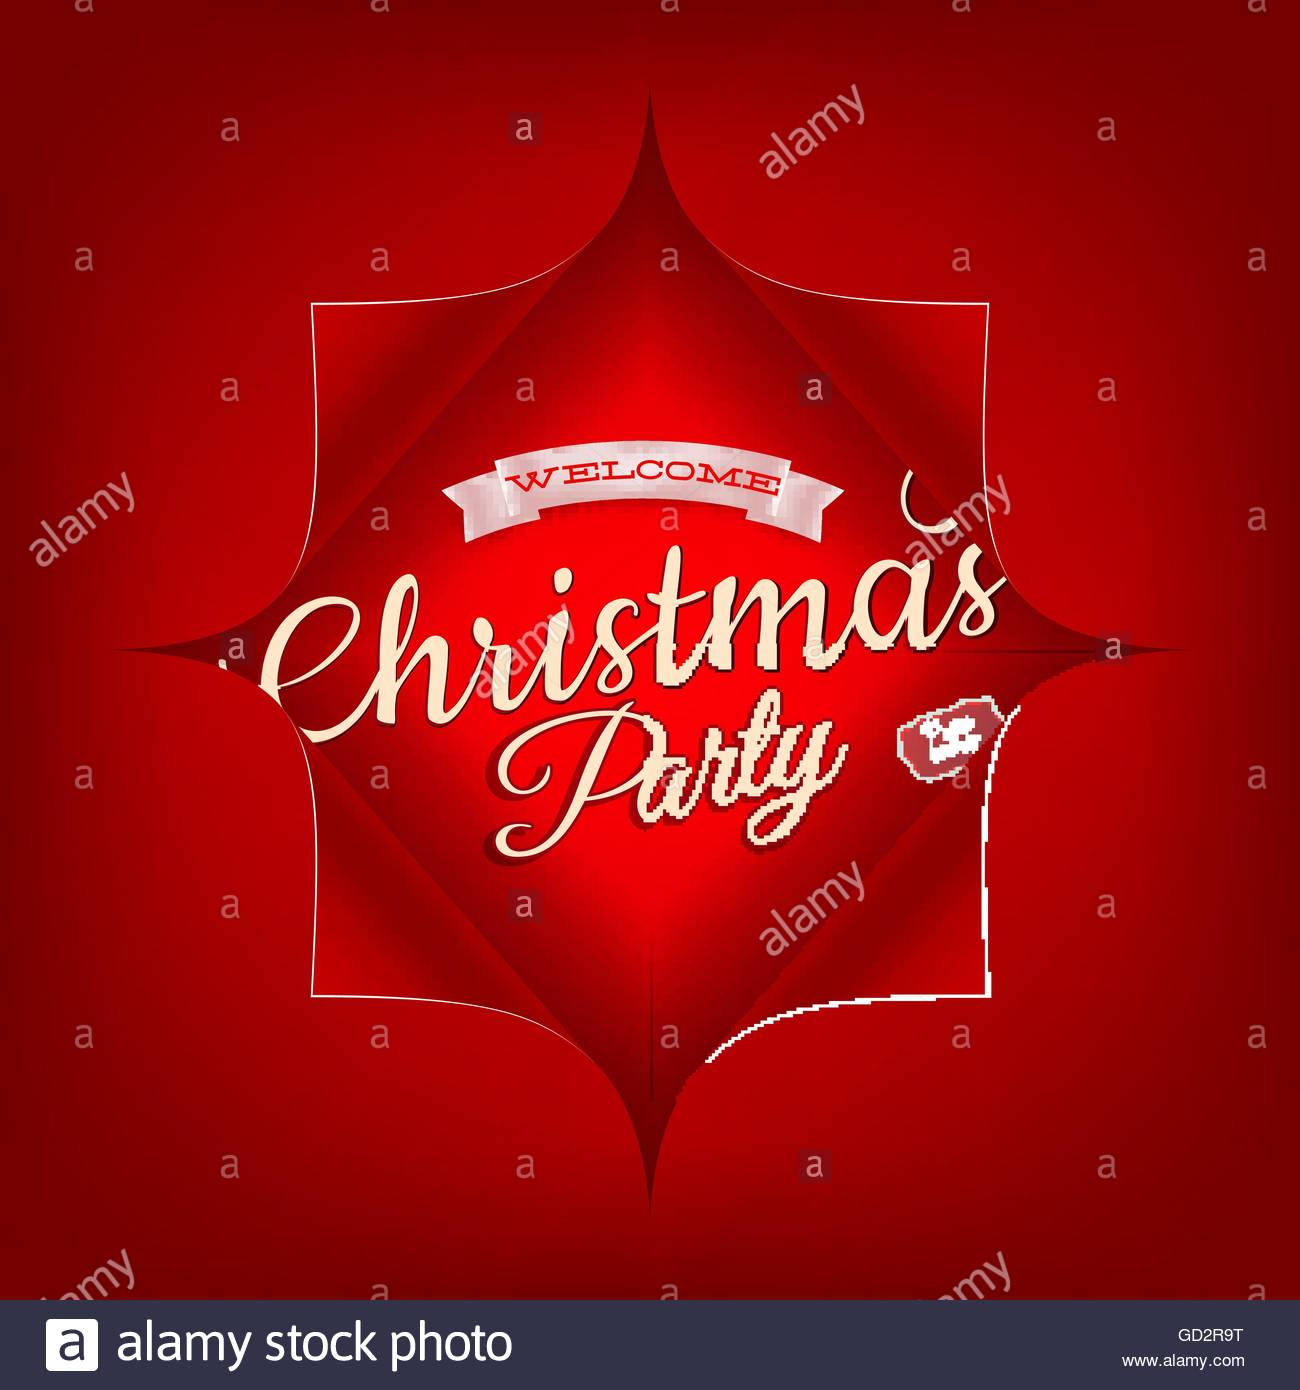 Merry Christmas Party Invitation Template  Eps 10 Stock Photo